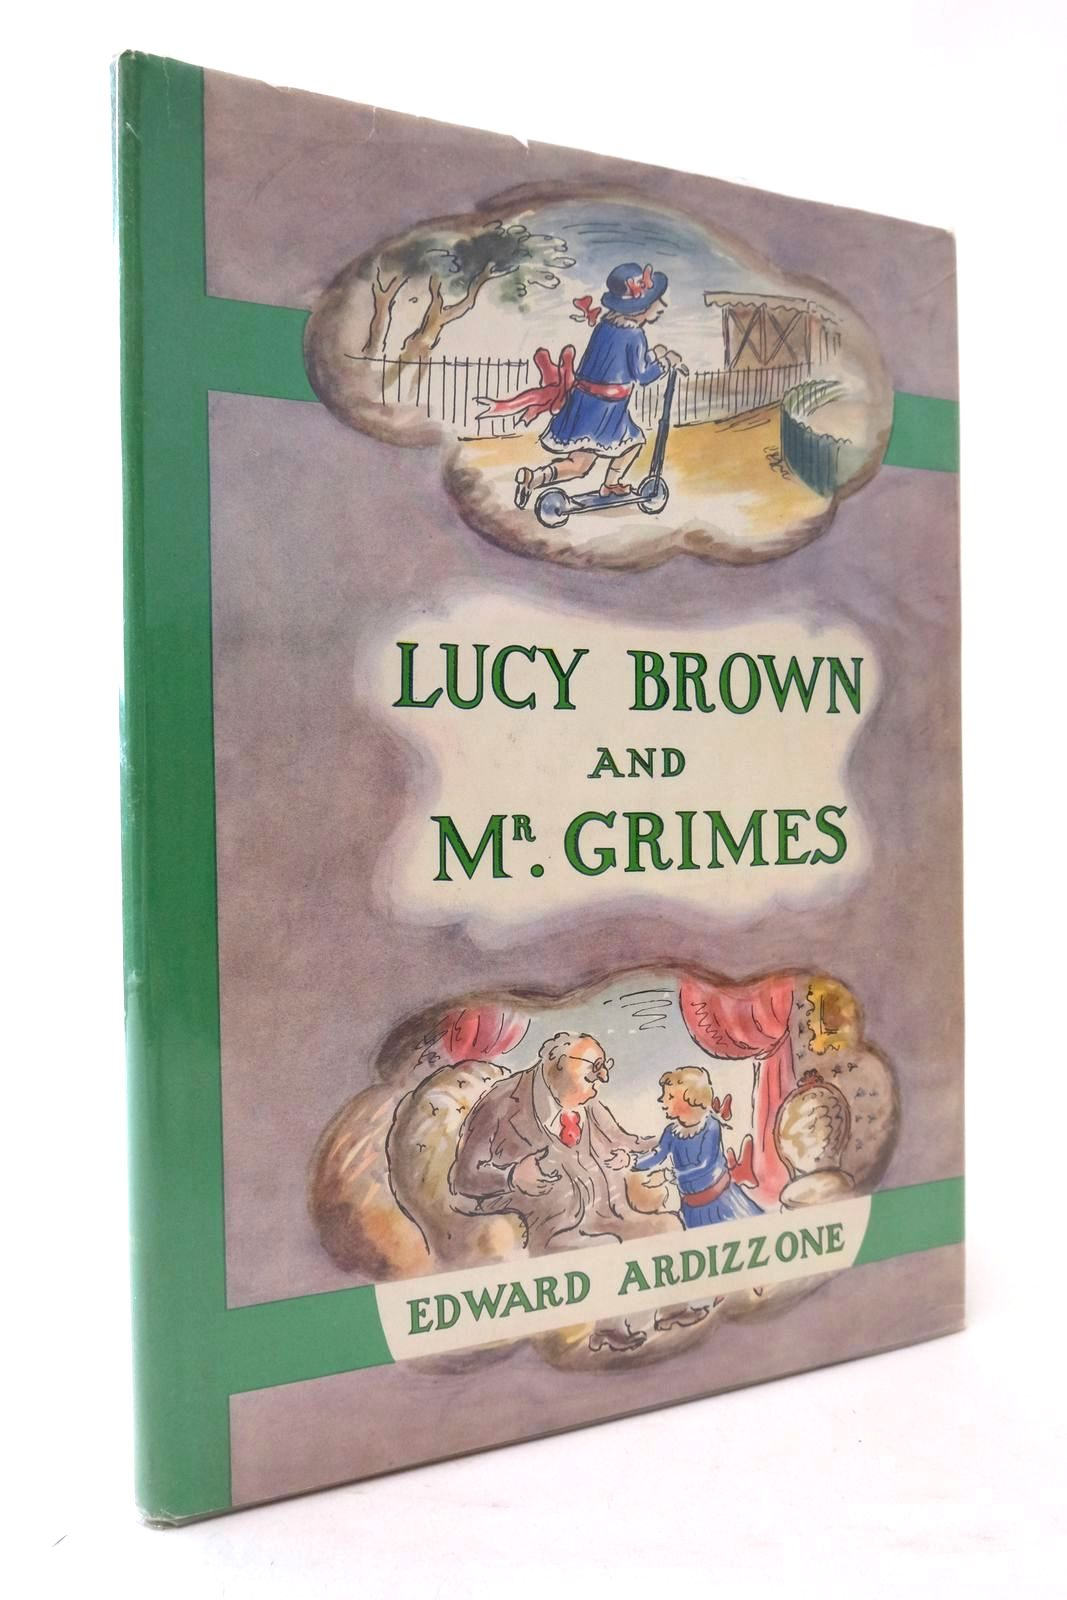 Photo of LUCY BROWN AND MR. GRIMES- Stock Number: 2134789